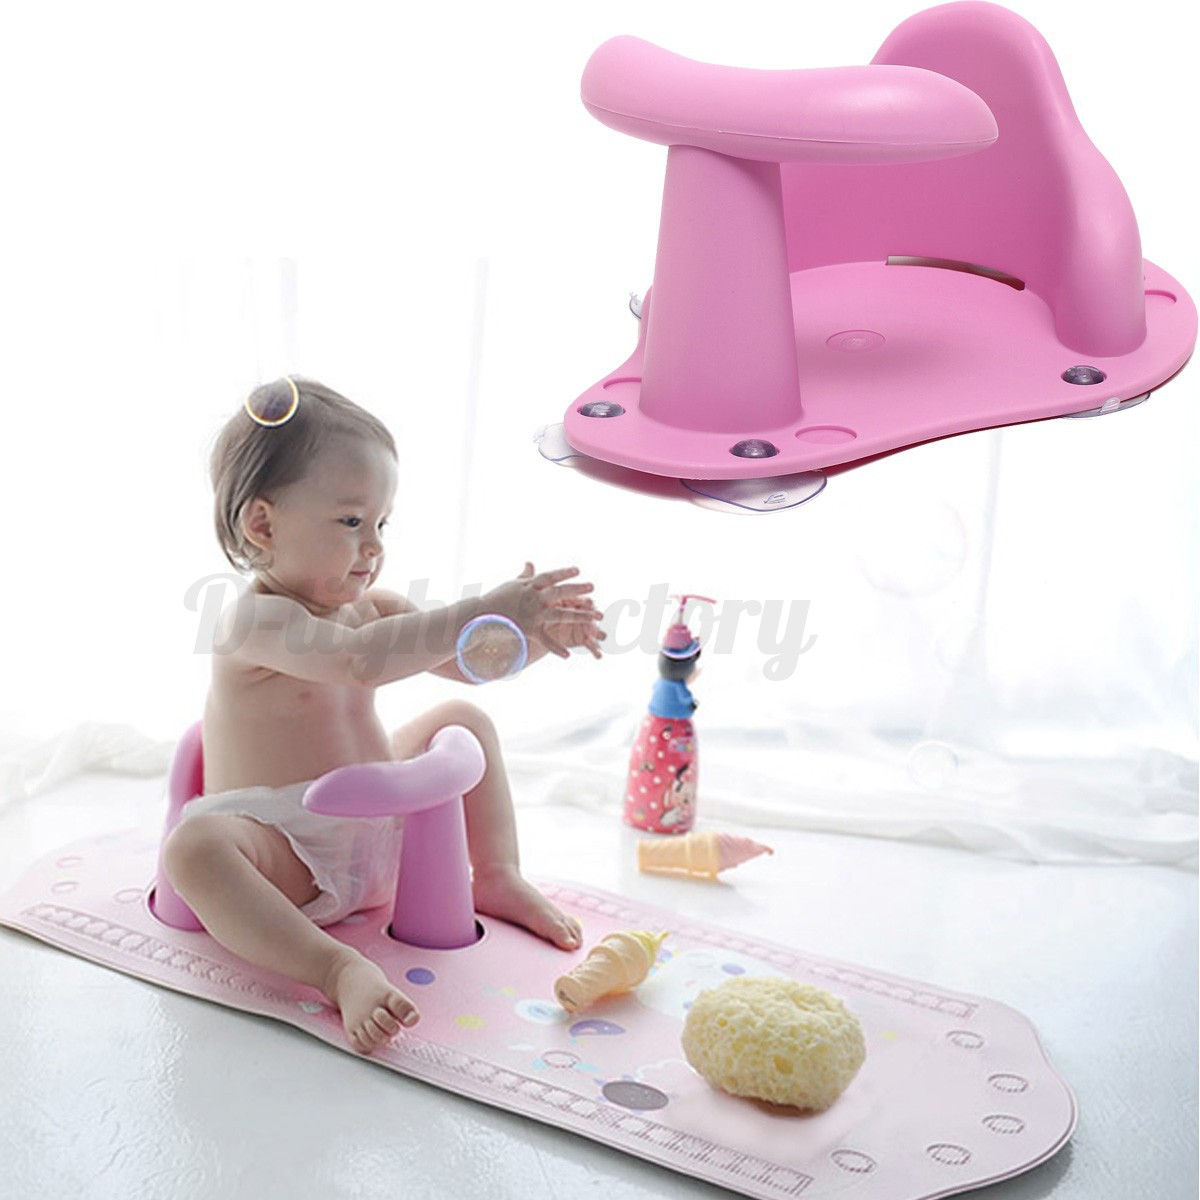 baby bather chair colorful folding chairs safety 1st bath seat ergonomic bathing